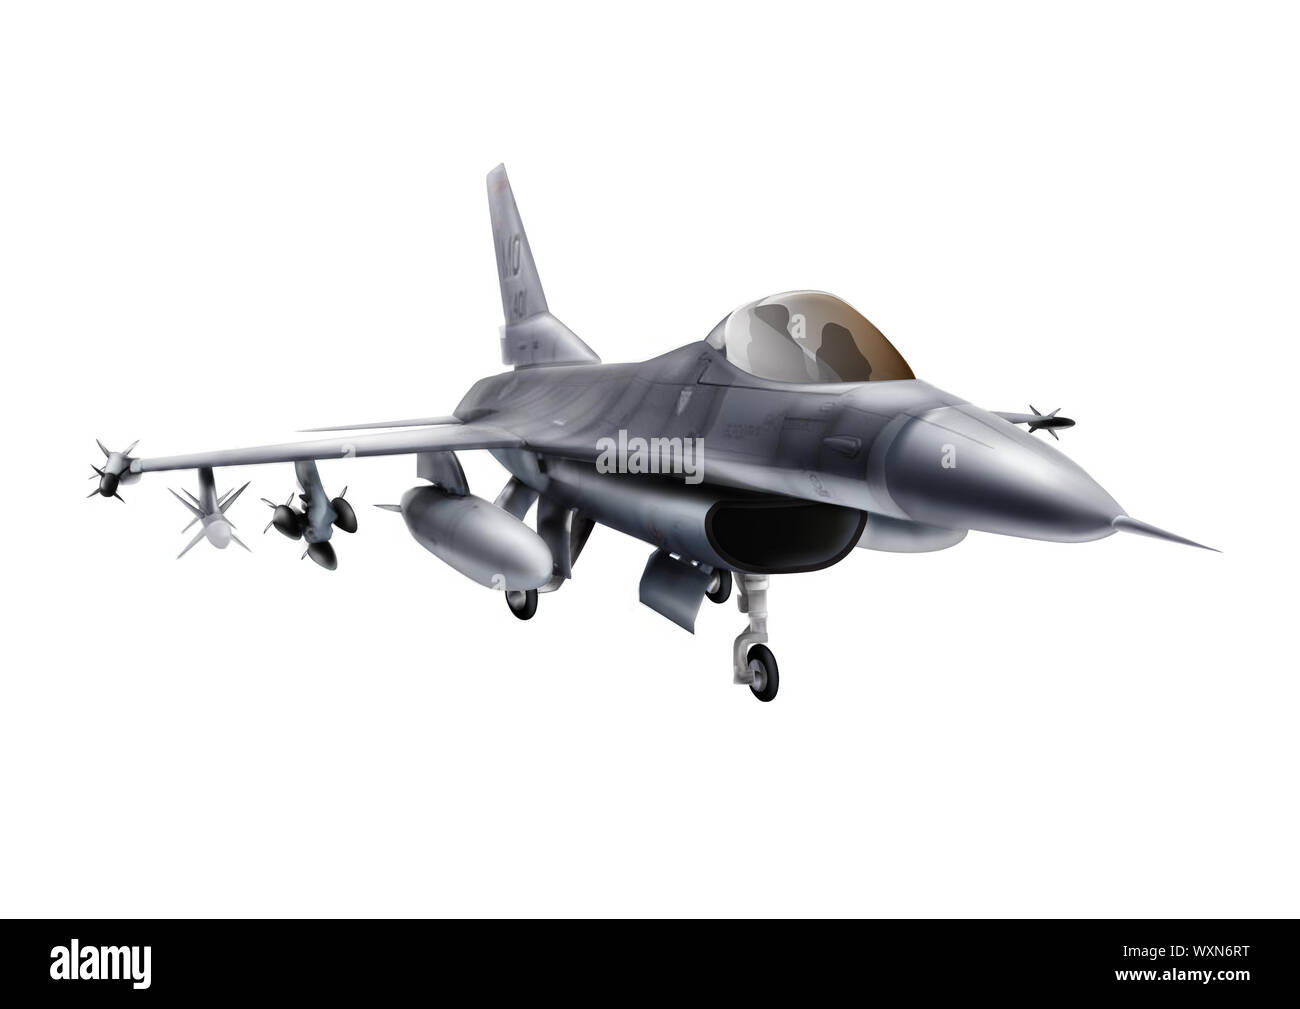 Fighter General Dynamics F-16A Fighting Falcon Banque D'Images